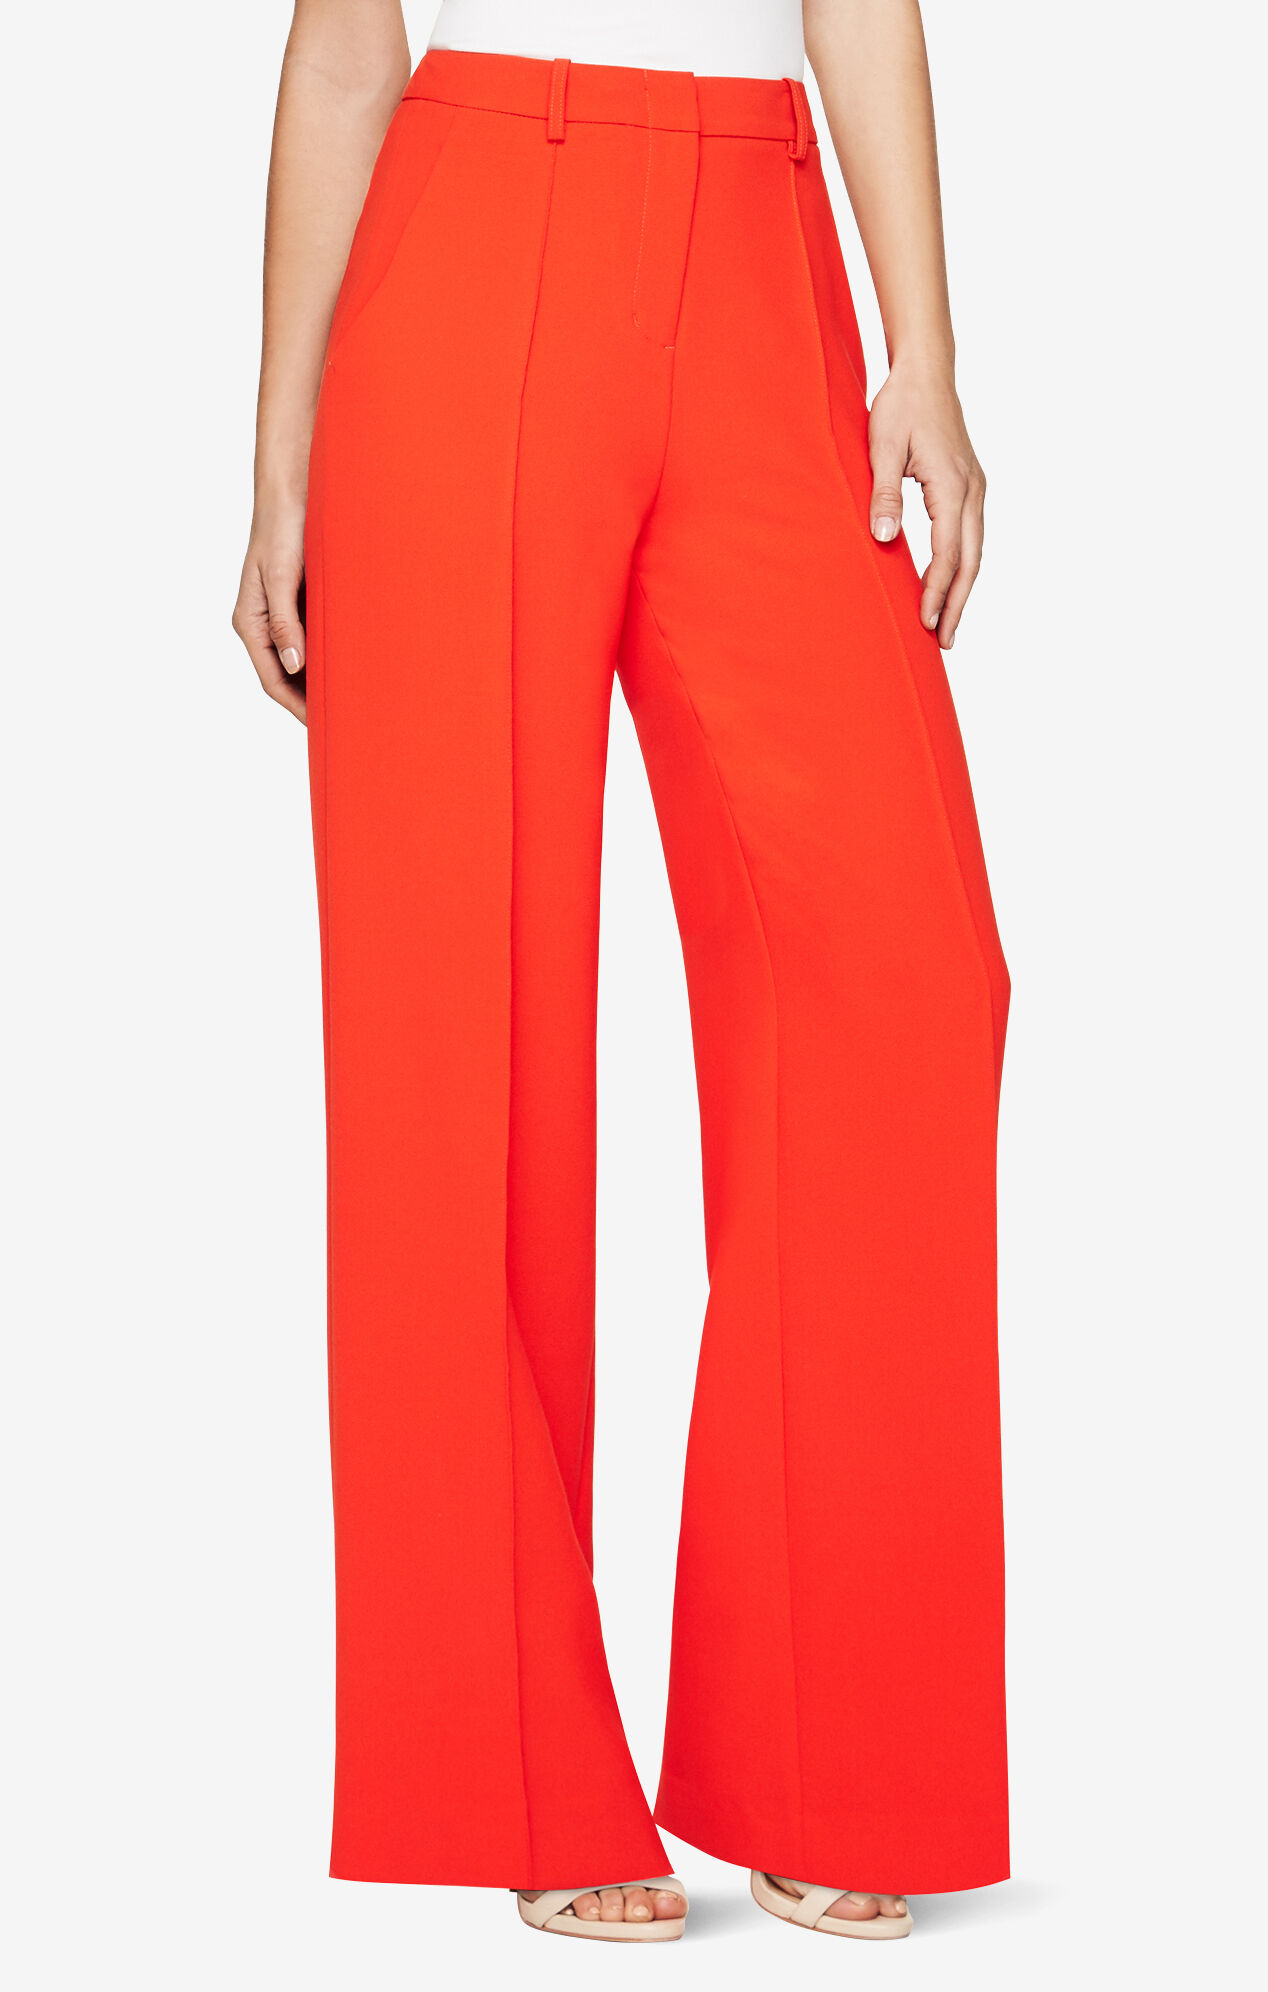 Shop the best deals on your favorite Wide Leg Pants and other trendy clothing on Poshmark. Save up to 70% off on new and preloved items!